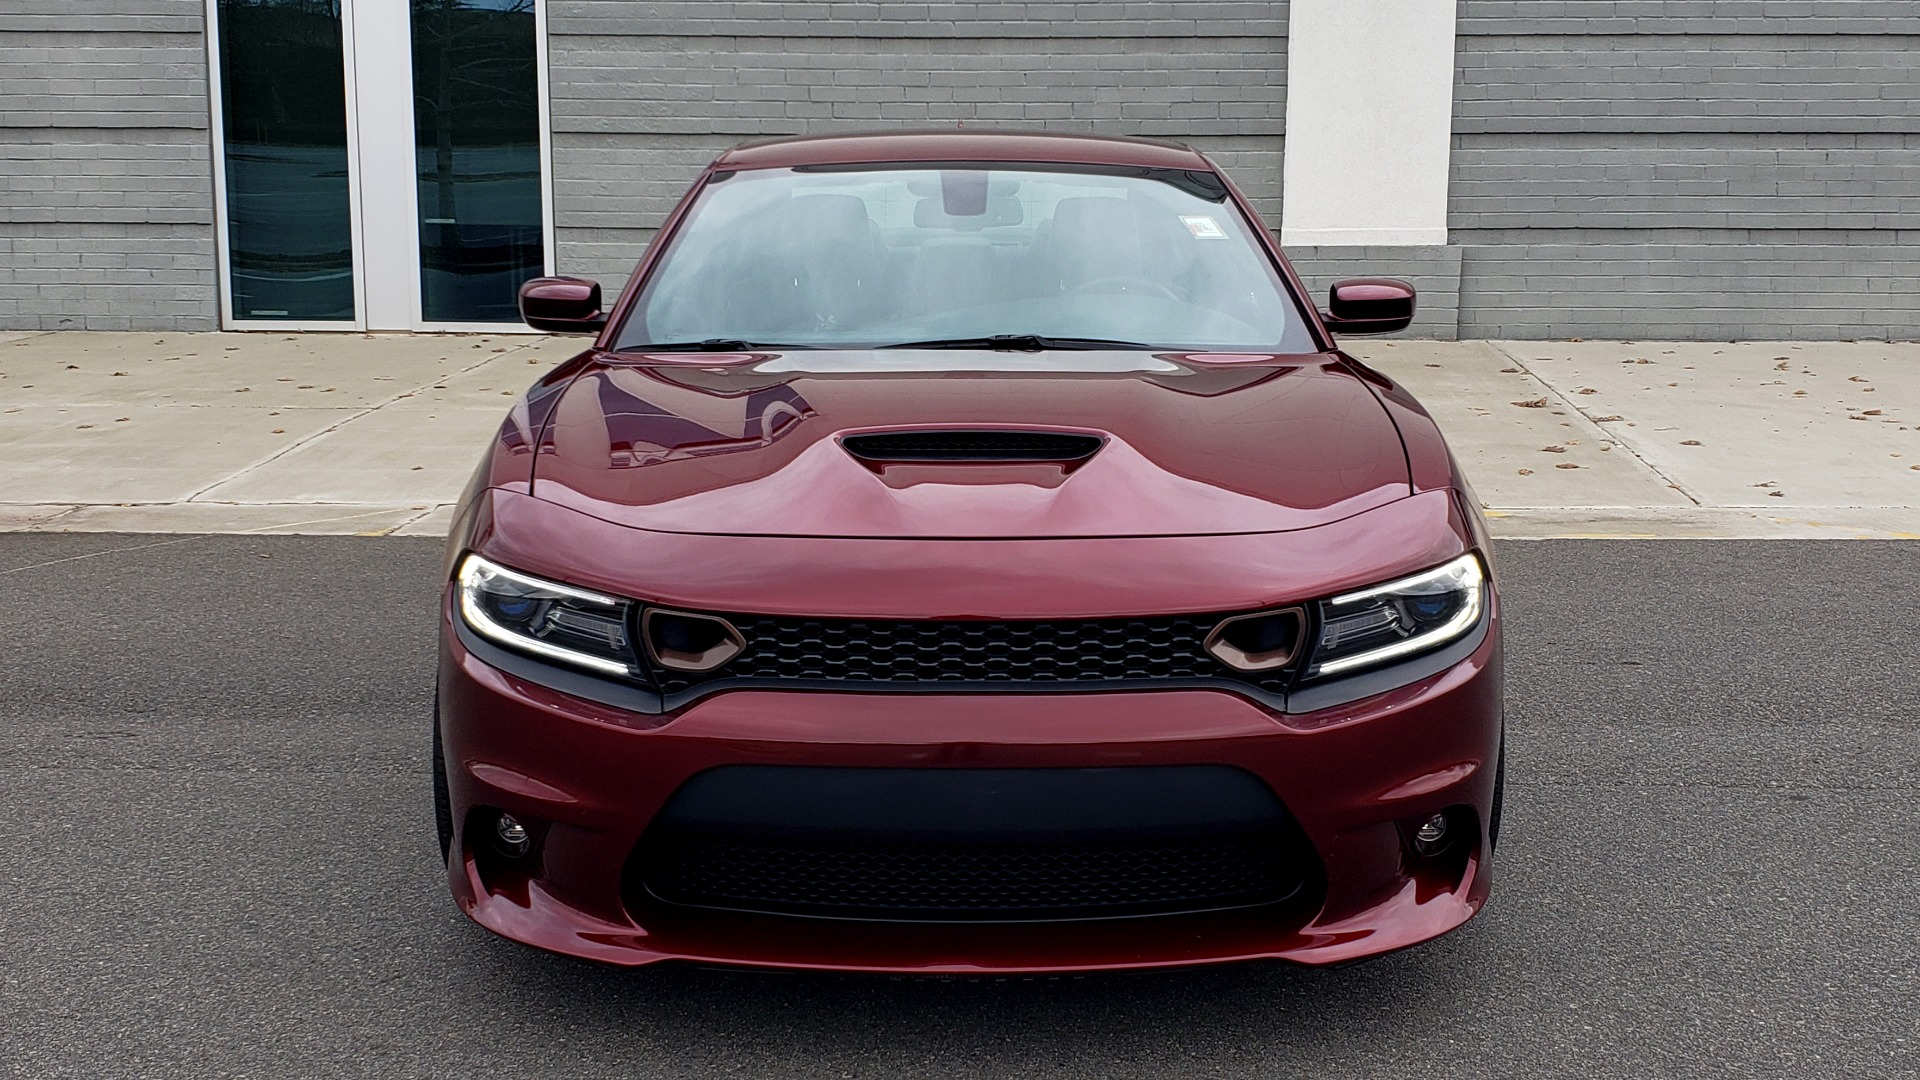 Used 2018 Dodge CHARGER R/T SCAT PACK / 6.4L 485HP / 8-SPD AUTO / HEATED / REARVIEW for sale Sold at Formula Imports in Charlotte NC 28227 22